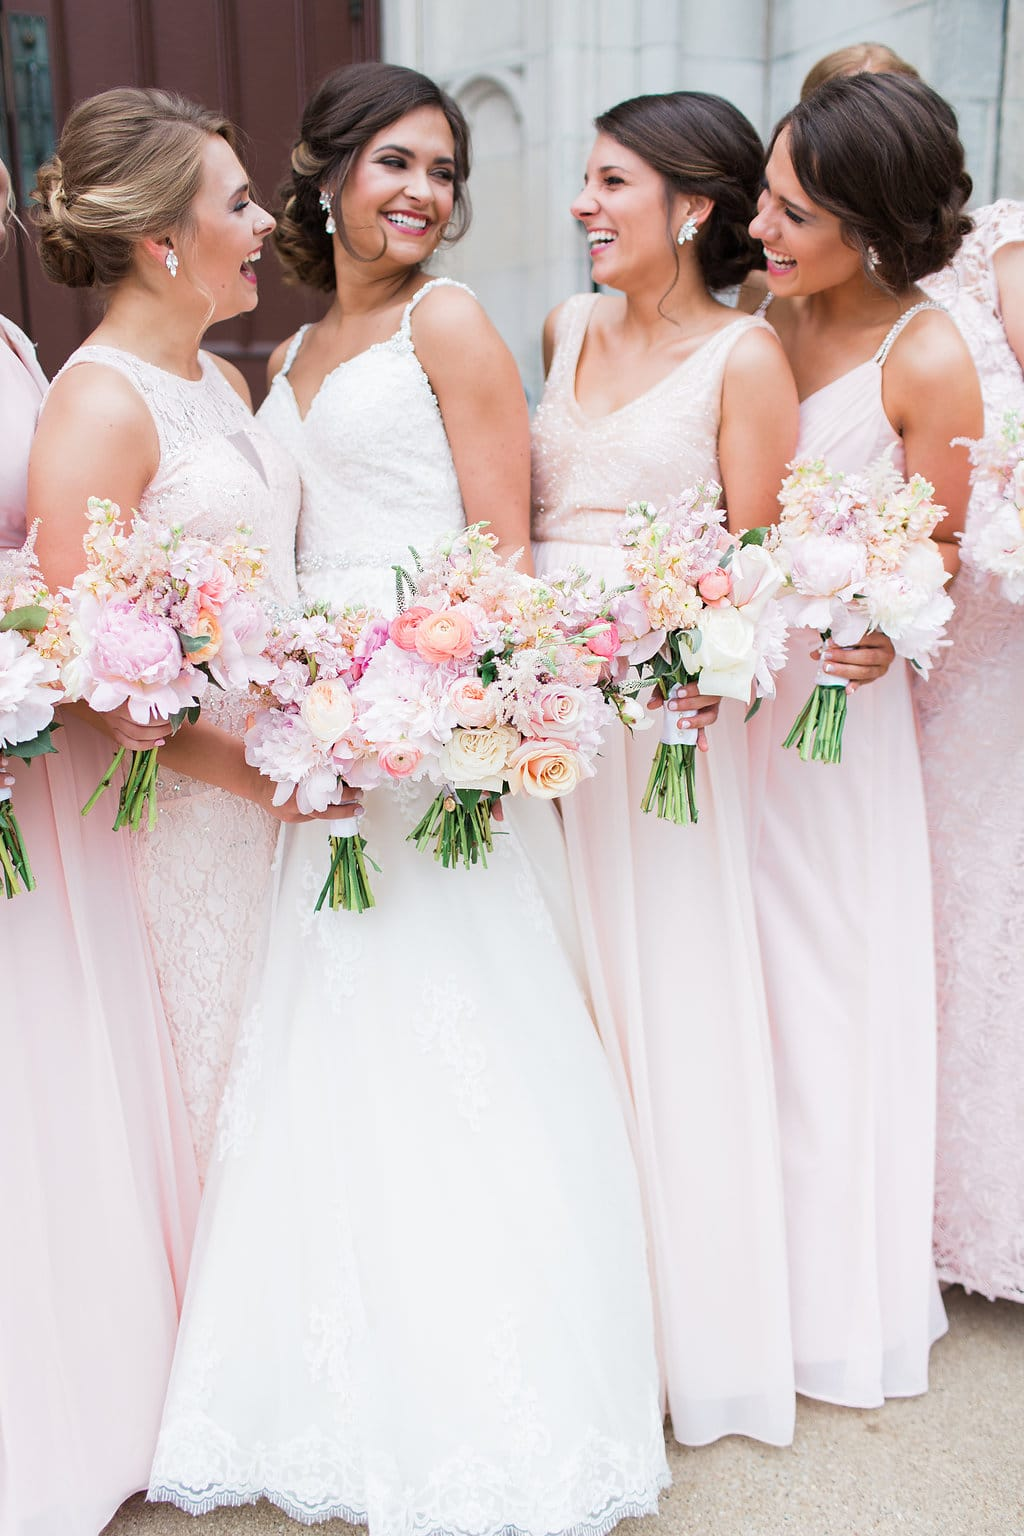 Maggie Sottero's Guide To Wedding Dress Budget Breakdown - Find the wedding dress of your dreams within your price range! Budget weddings don't need to skimp on style with our Rebecca Ingram gowns